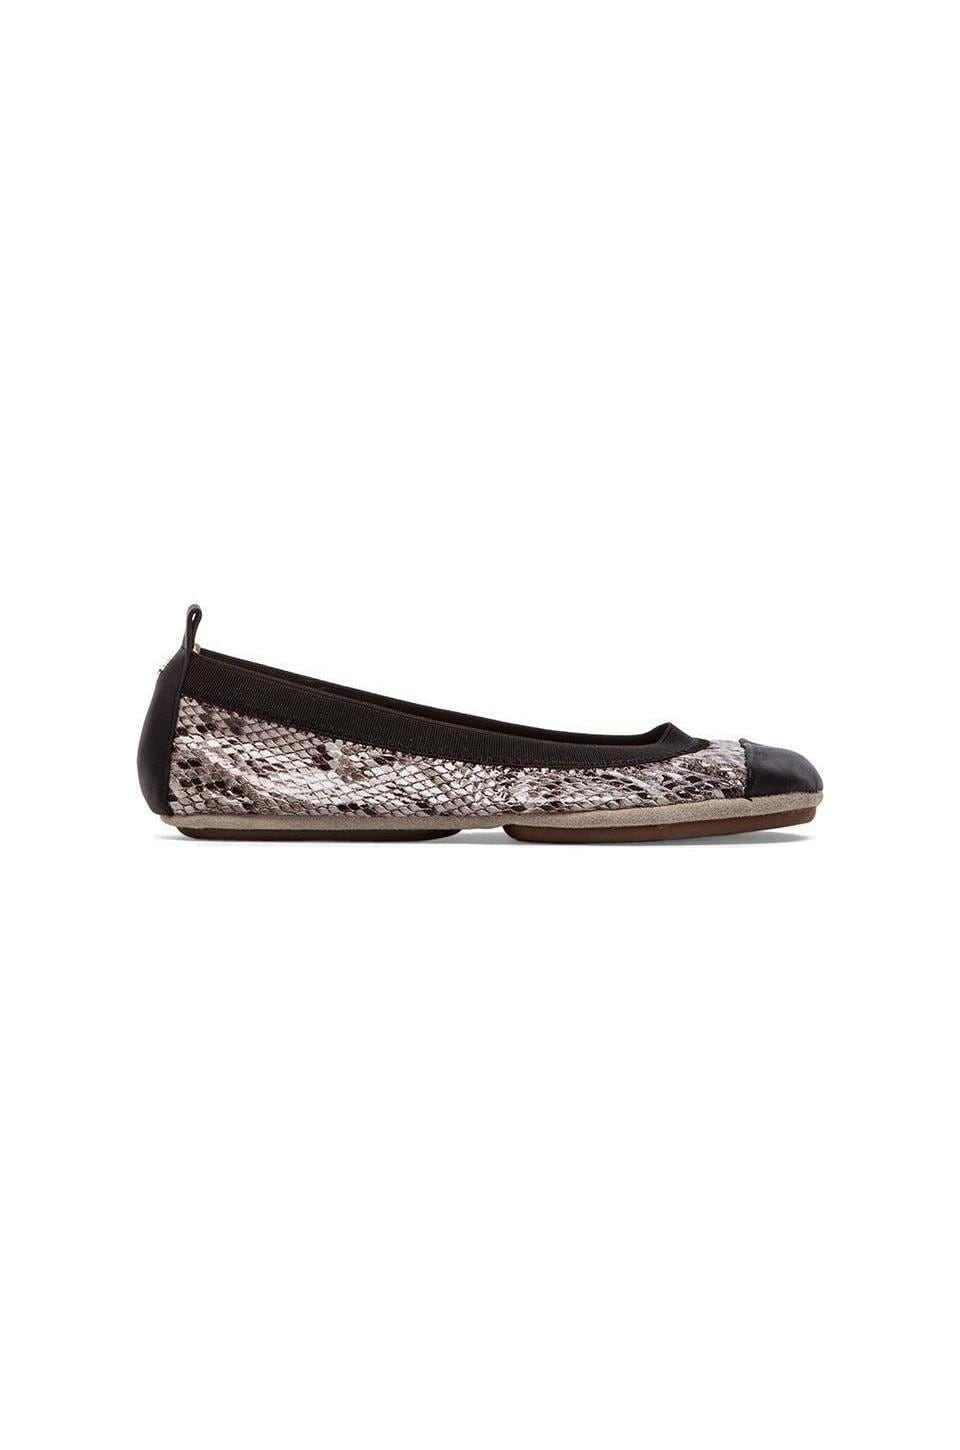 Yosi Samra Samantha Embossed Snake Leather Flat in Smoke & Black